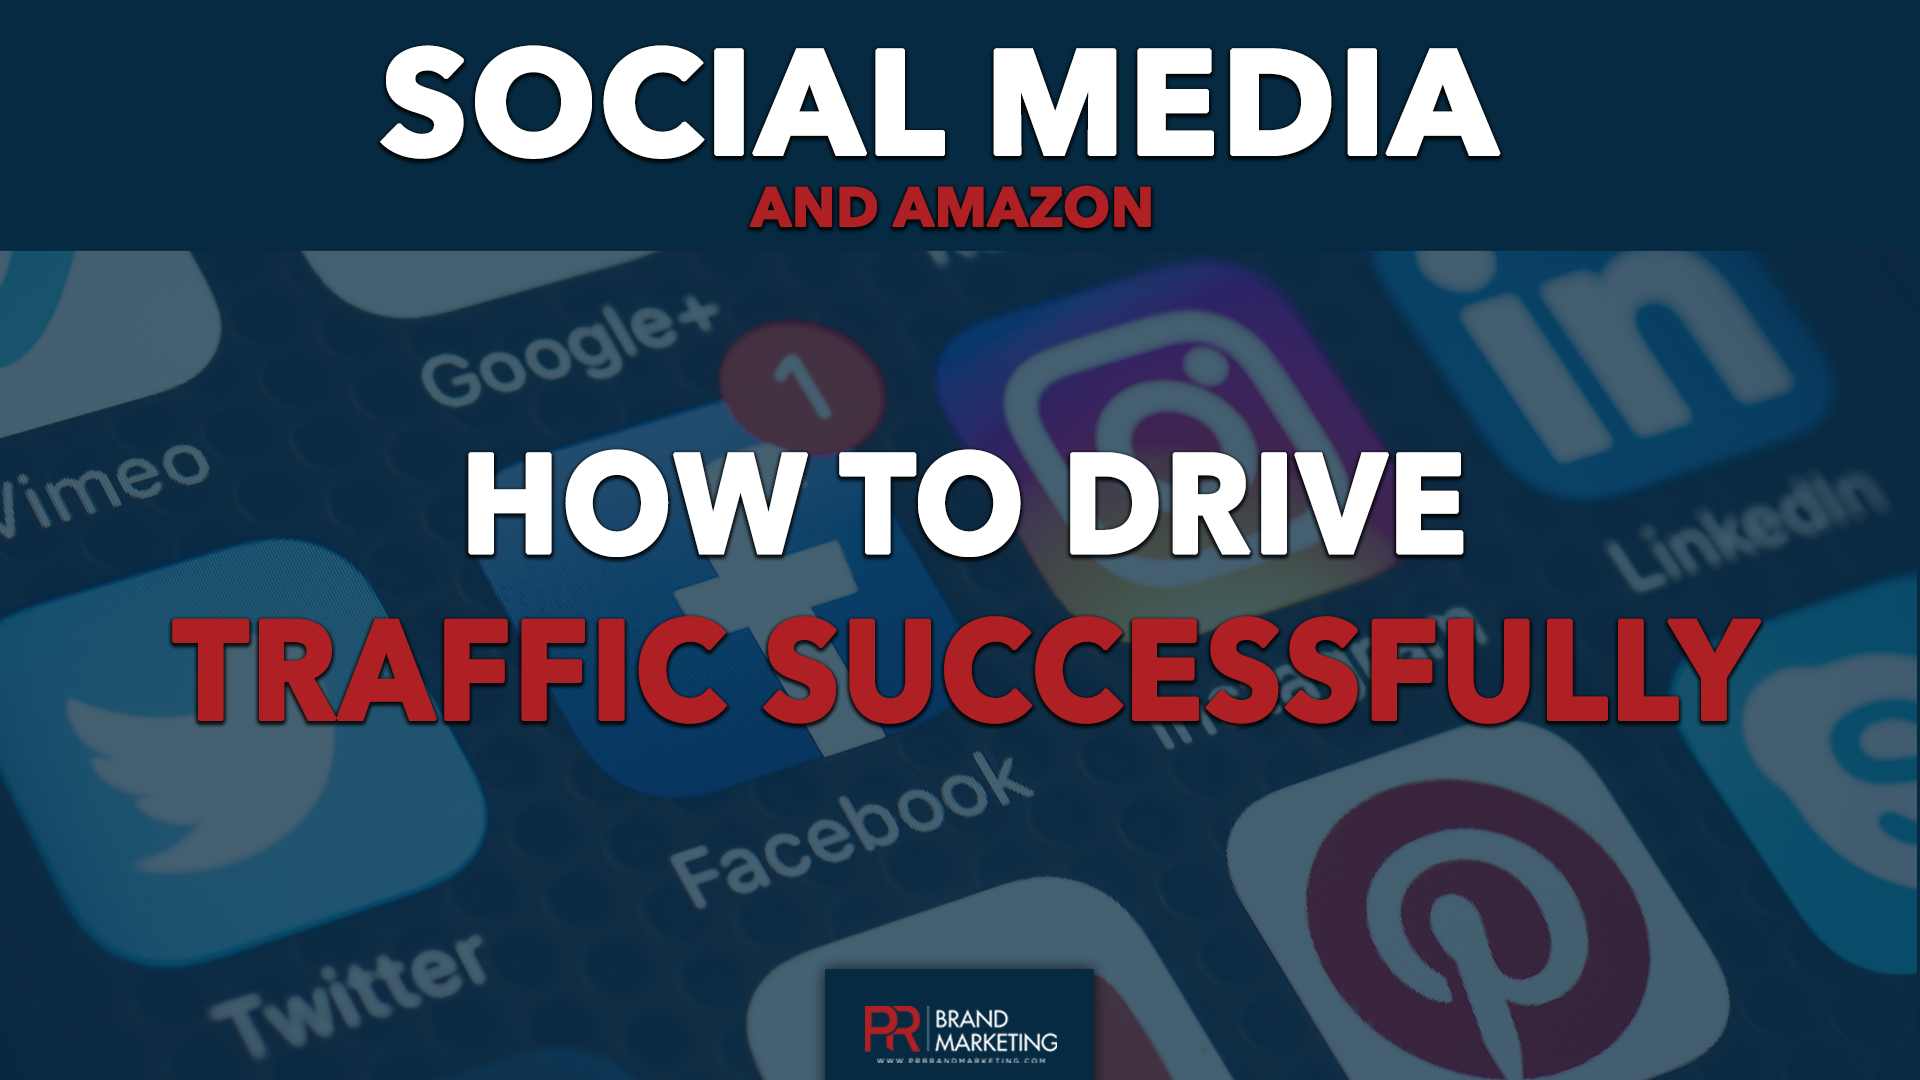 Social media and Amazon how to drive traffic succsessfully